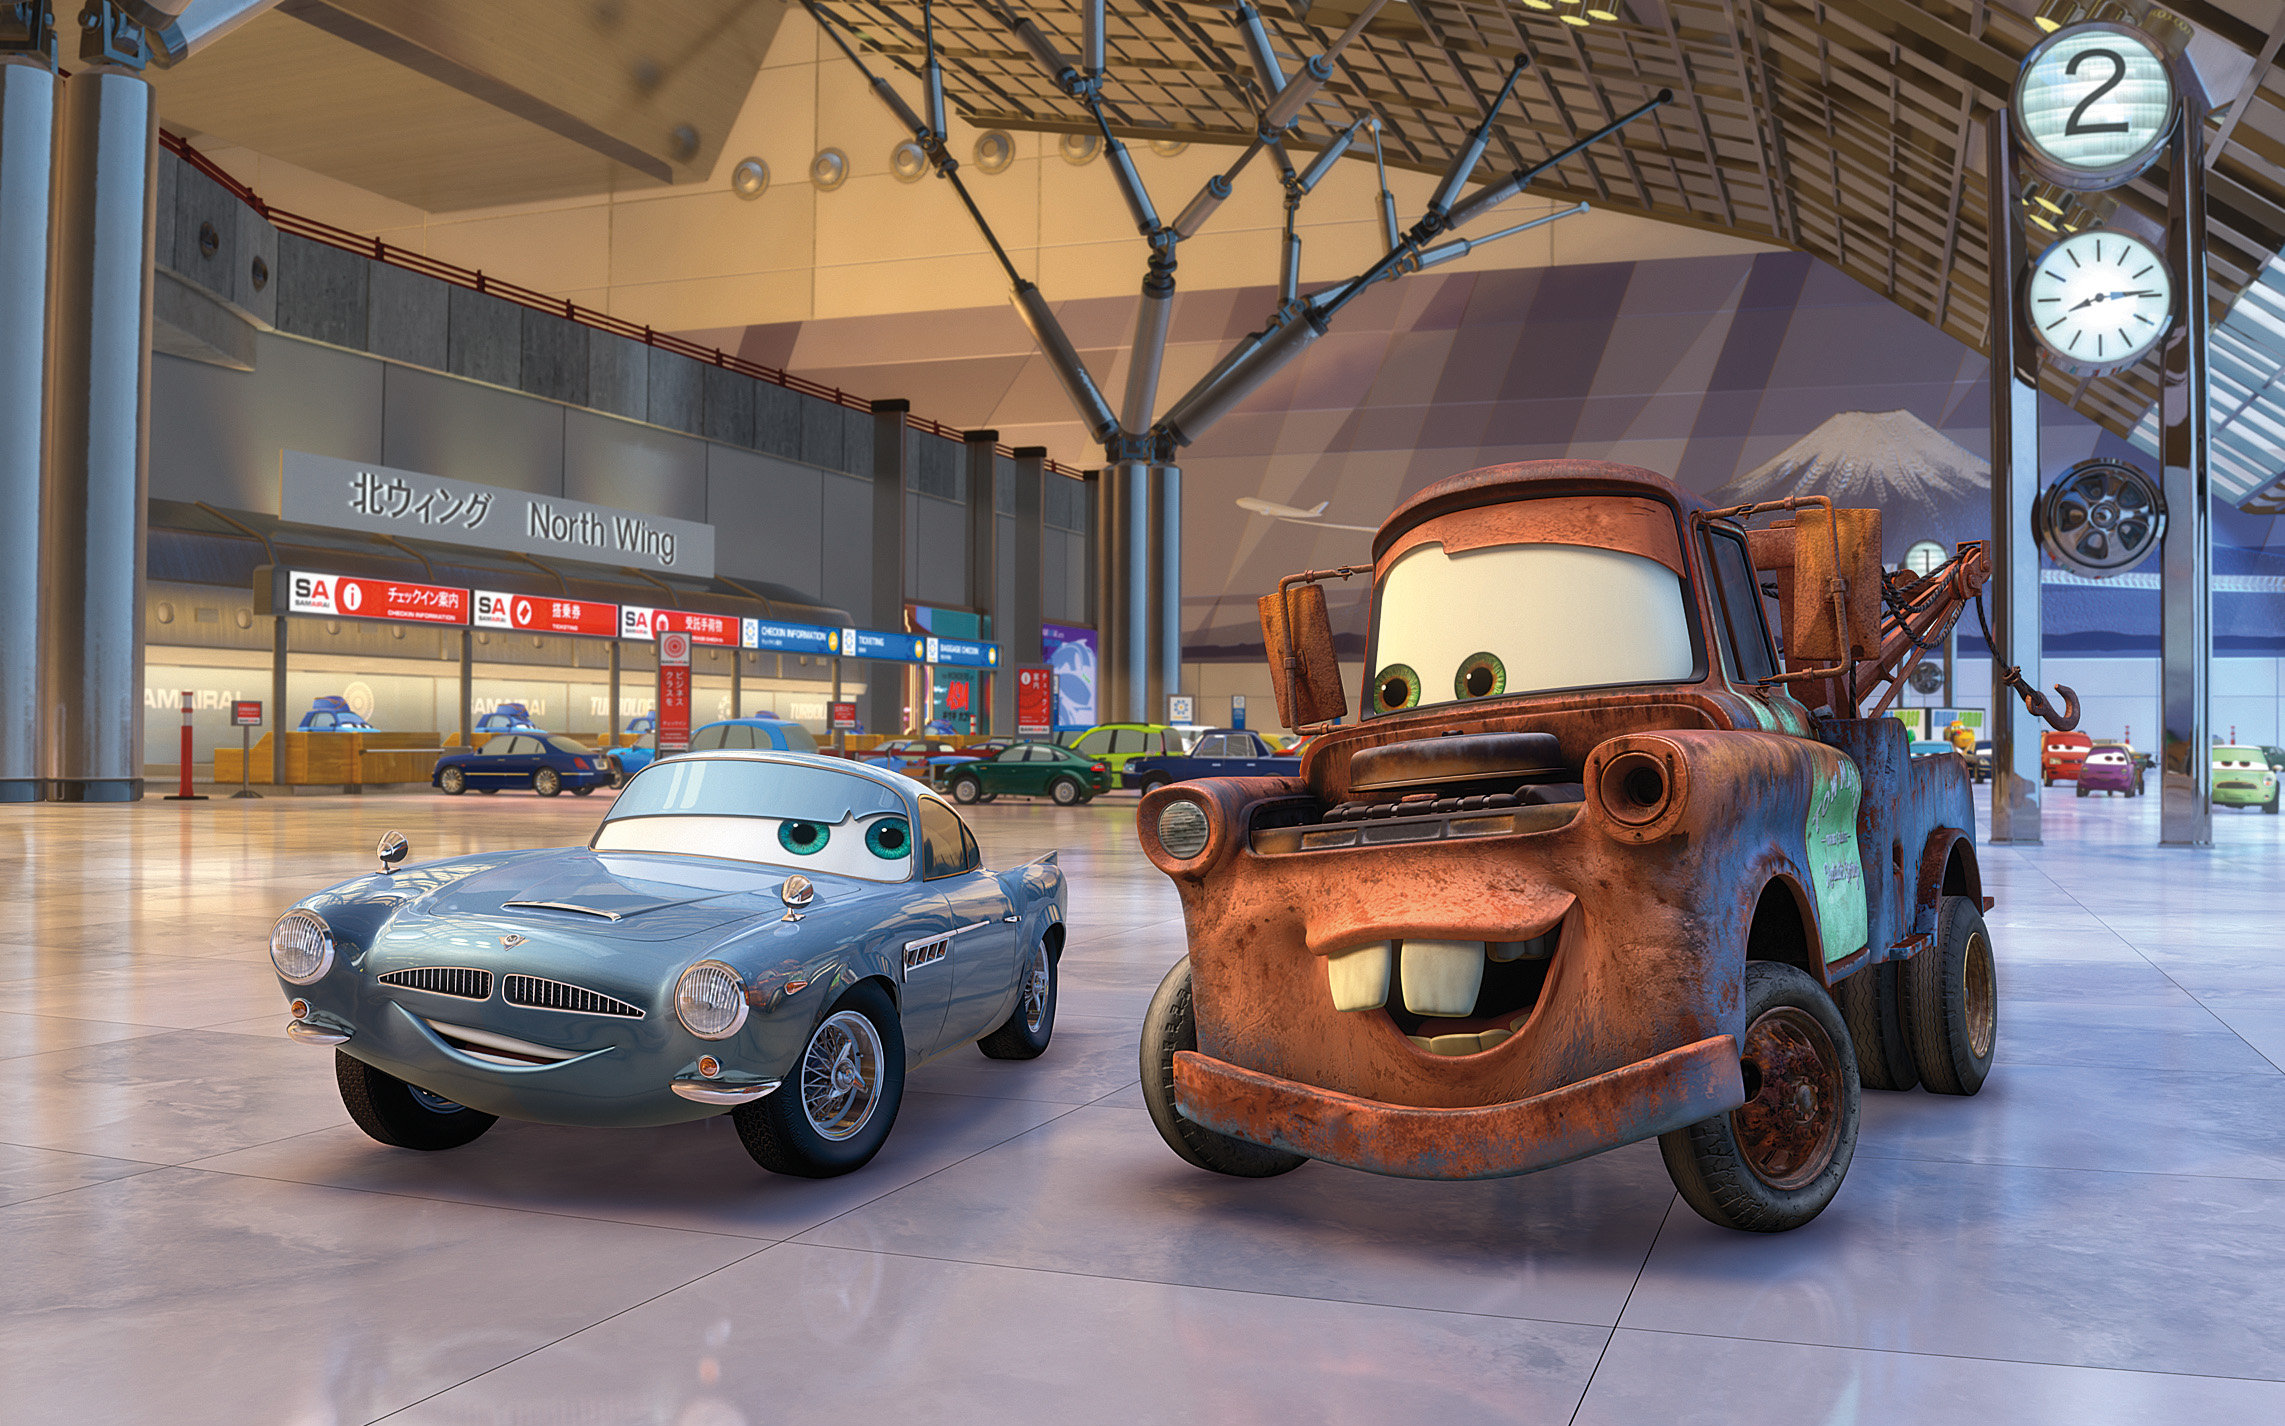 Mater (voiced by Larry the Cable Guy) meets the spy car Finn McMissile (voiced by Michael Caine) in Cars 2 (2011)